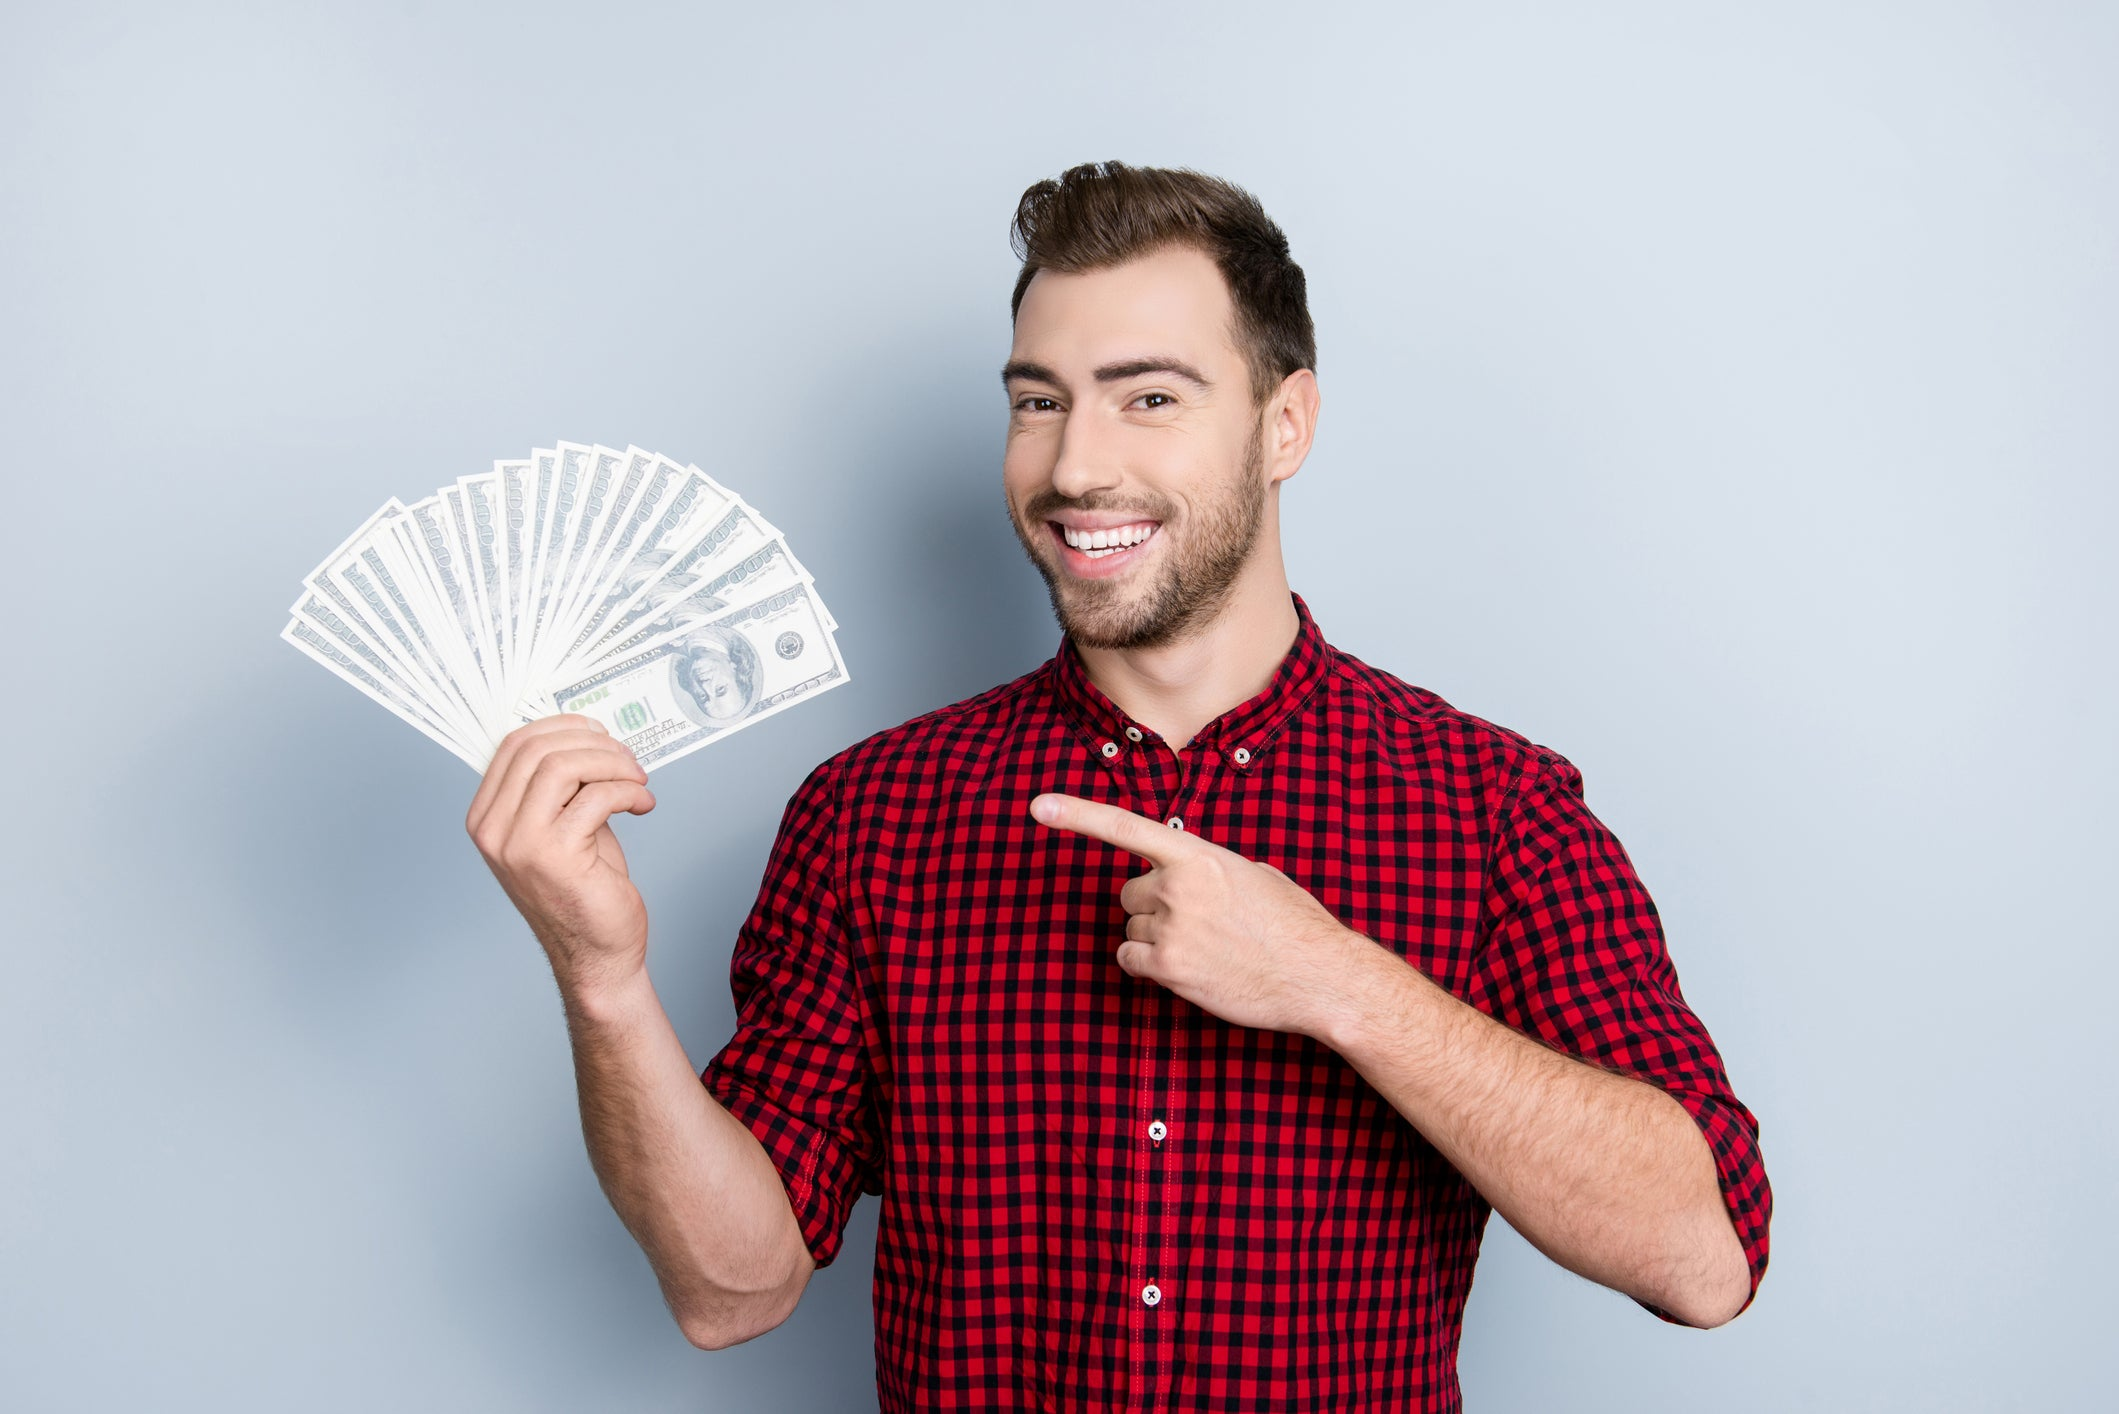 5 Completely Legal Ways to Lower Your Taxes | The Motley Fool